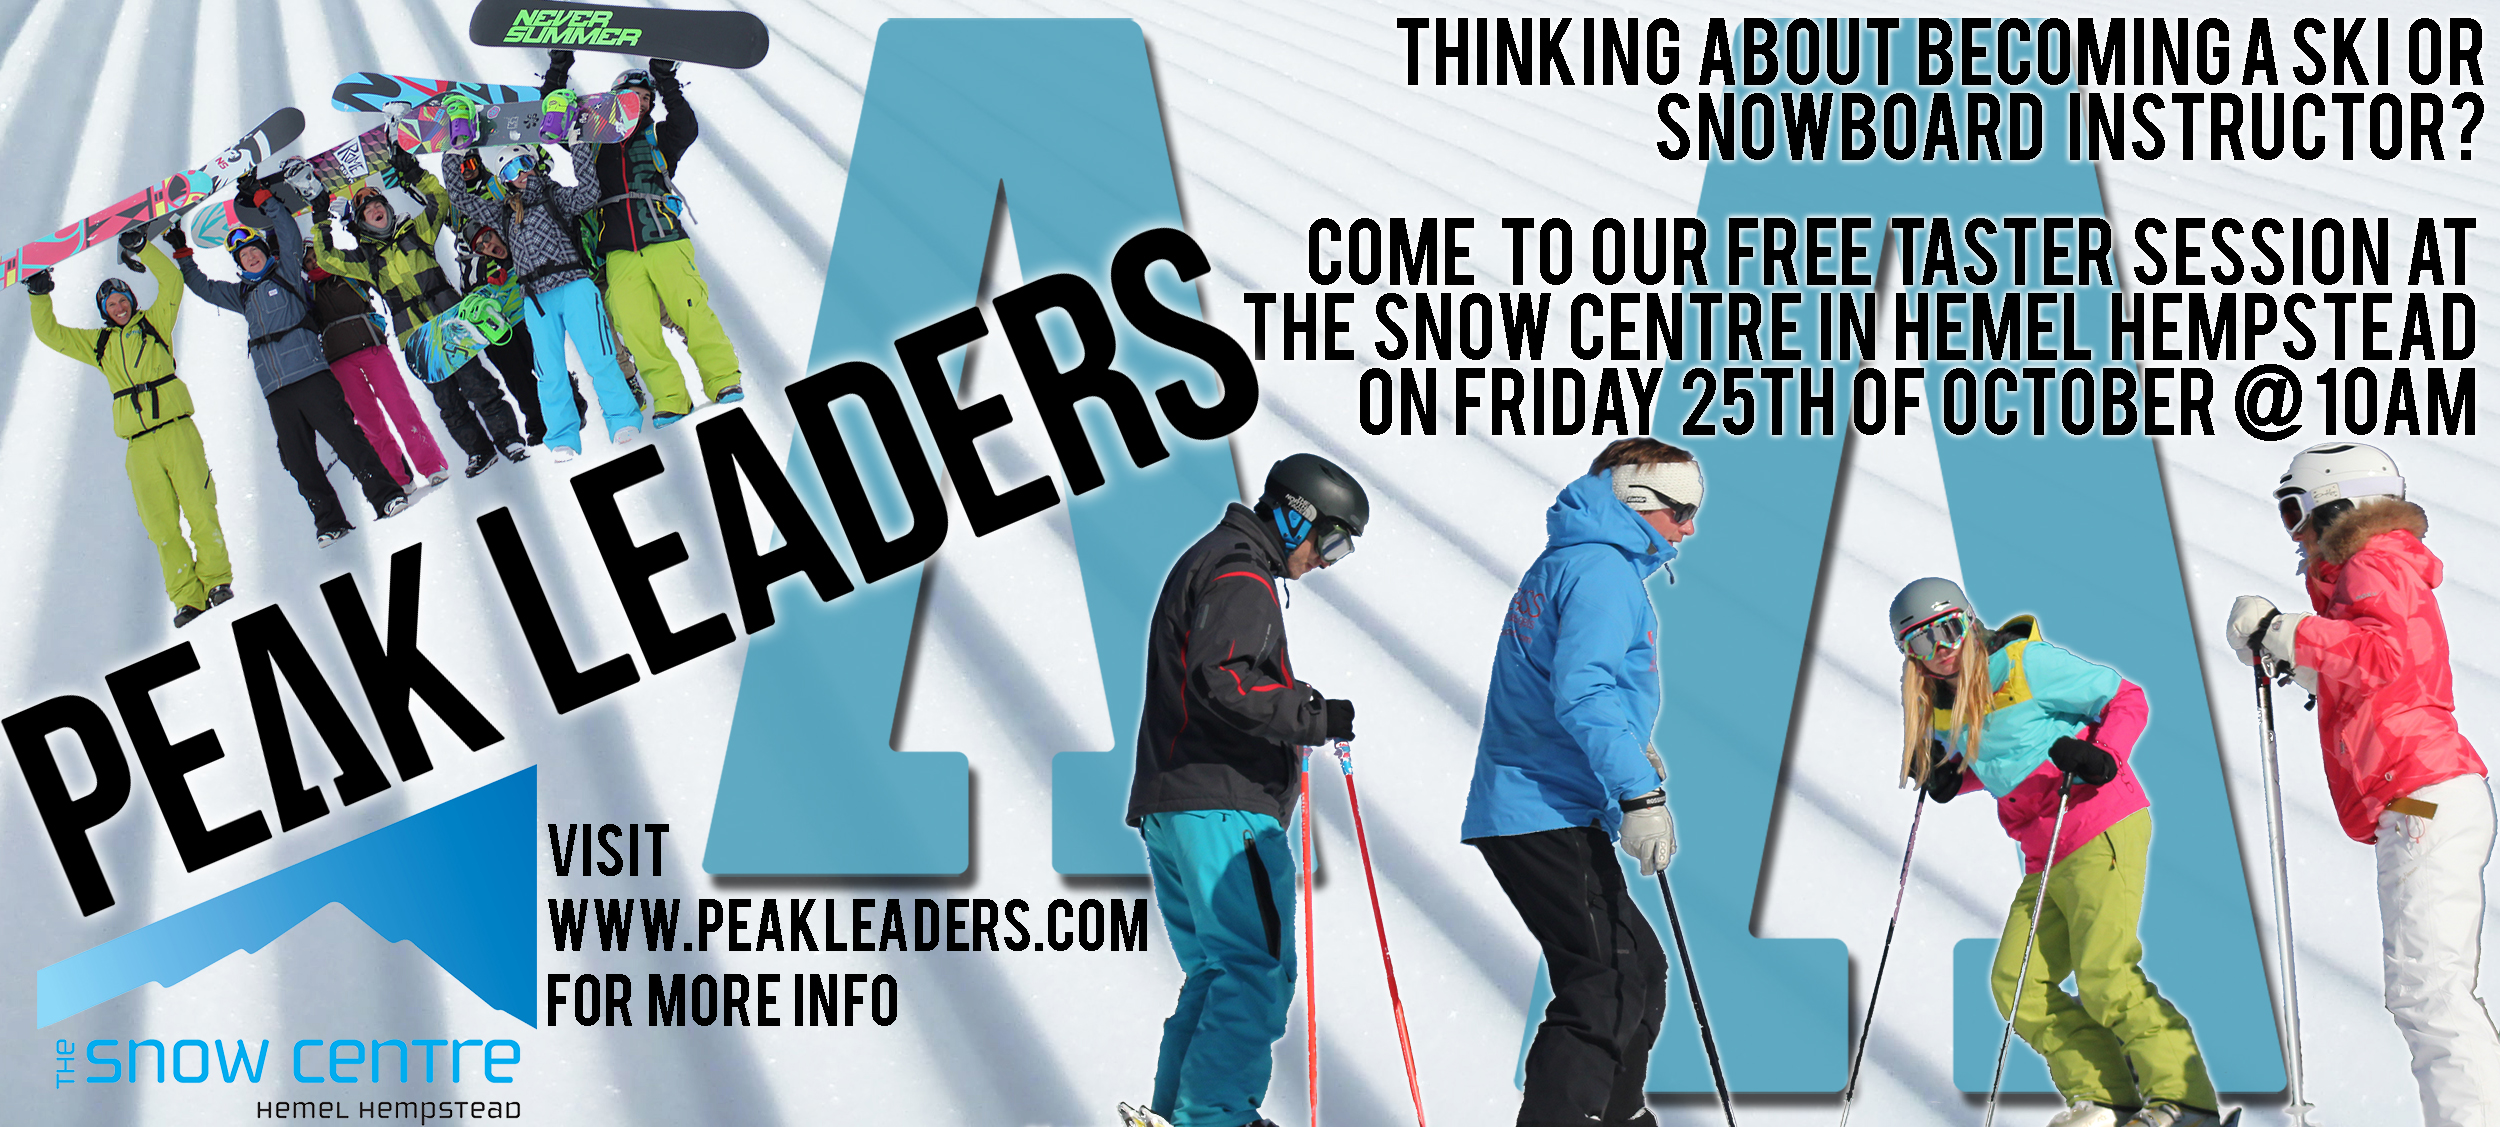 peak leaders snowboard instructor course morzine